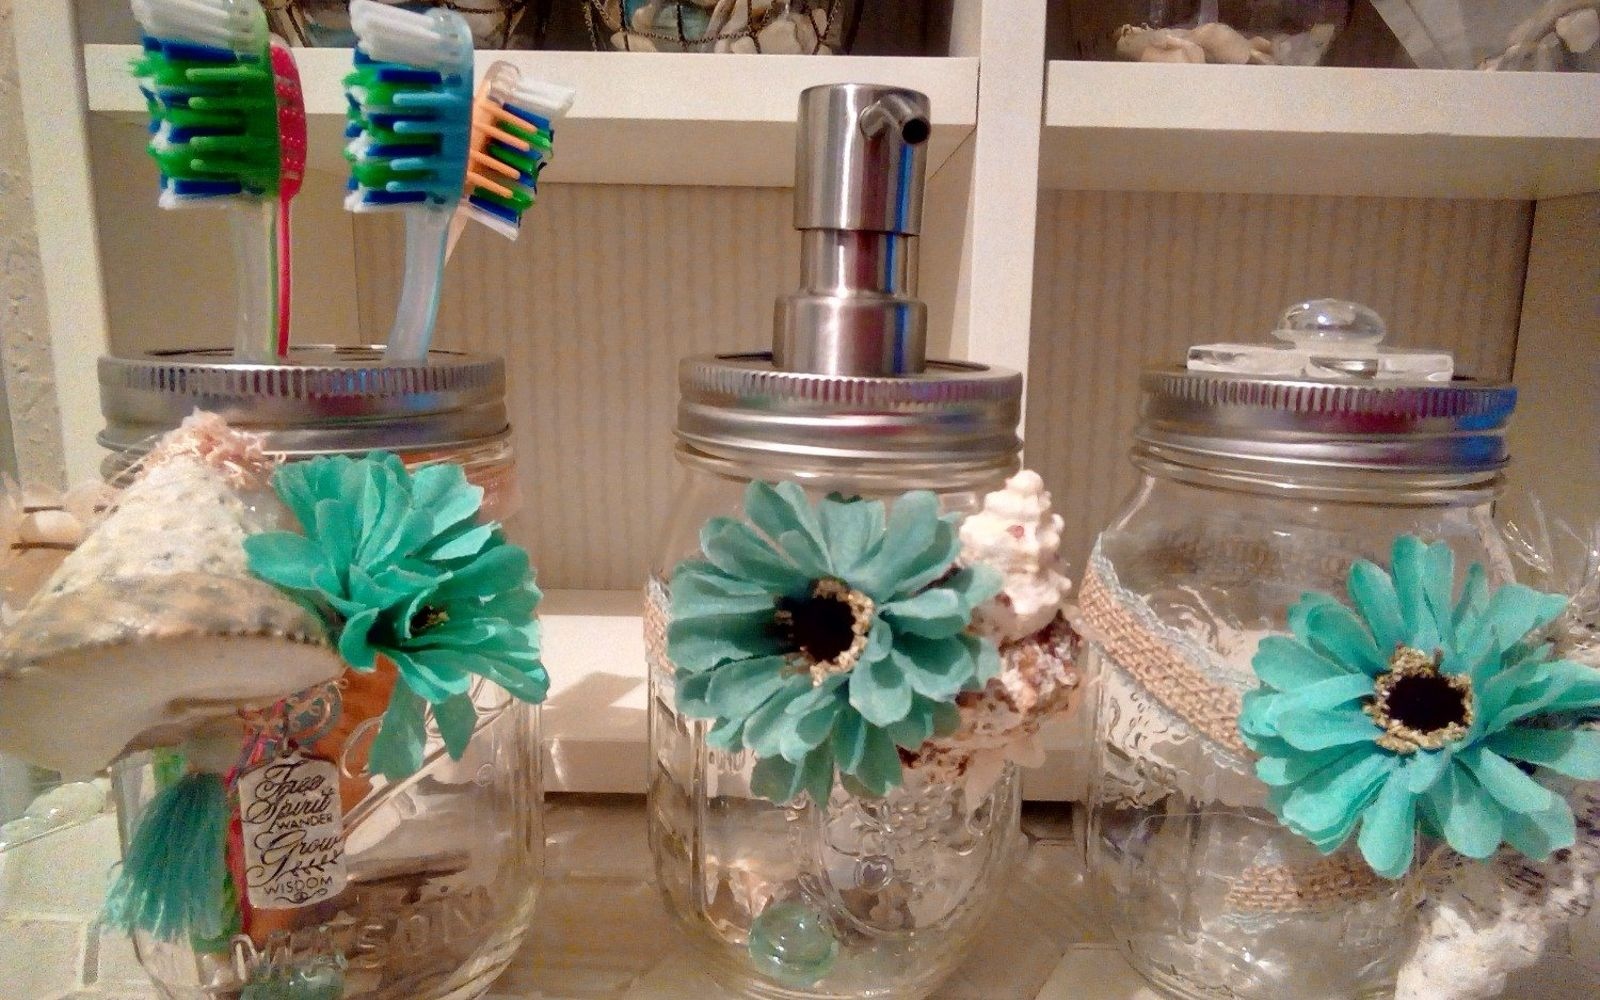 s 30 great mason jar ideas you have to try, Coastal Bathroom Container